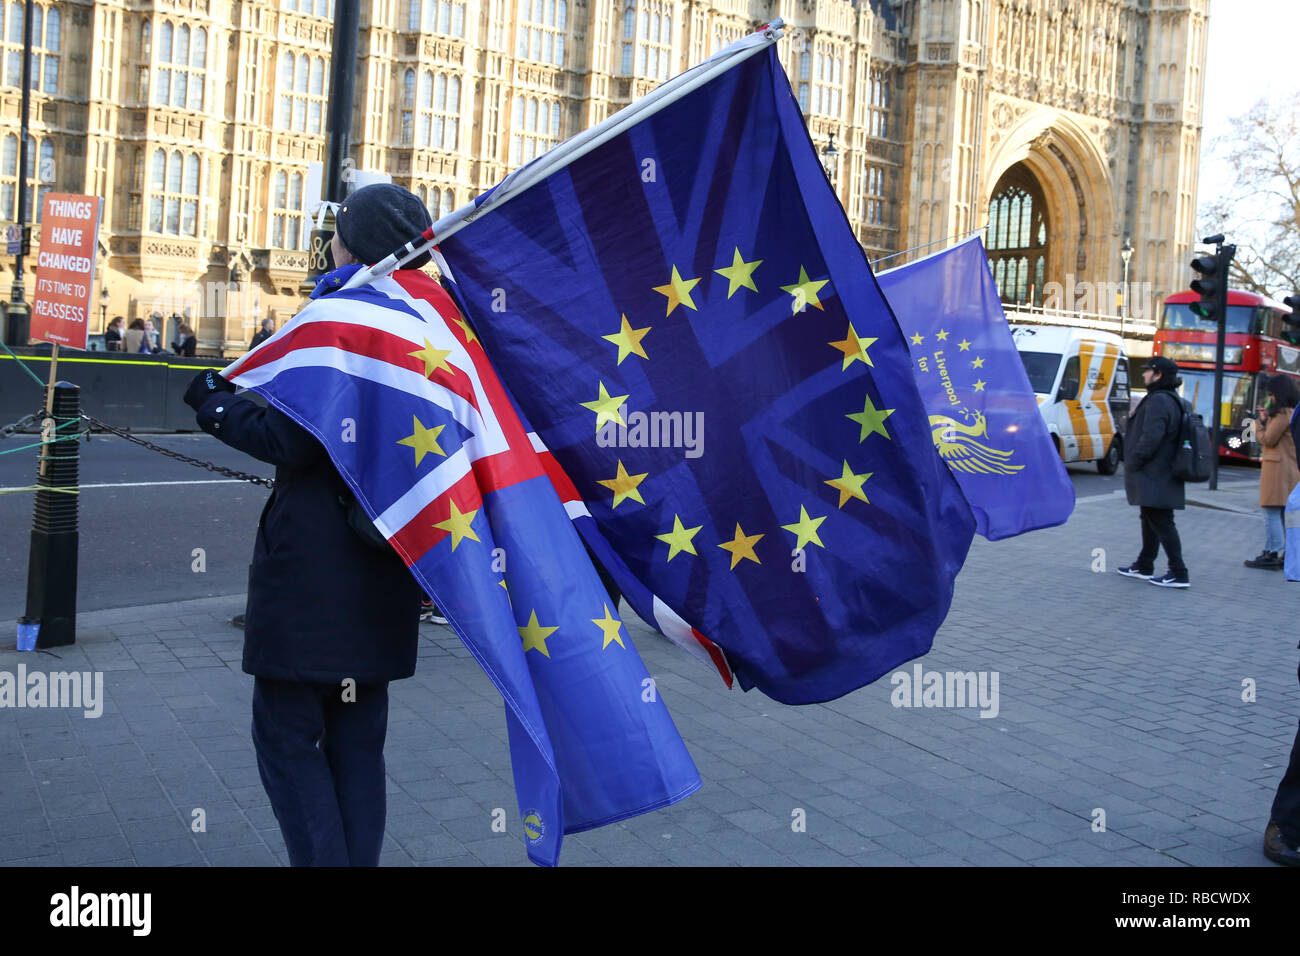 Anti-Brexit demonstrators seen holding the European Union flag and the union jack flag during the protest. Anti Brexit demonstrators gather outside the British Parliament a week before the MPs to vote on the finalized Brexit deal, MPs will vote on Theresa May's Brexit deal on Tuesday, 15 January.' - Stock Image